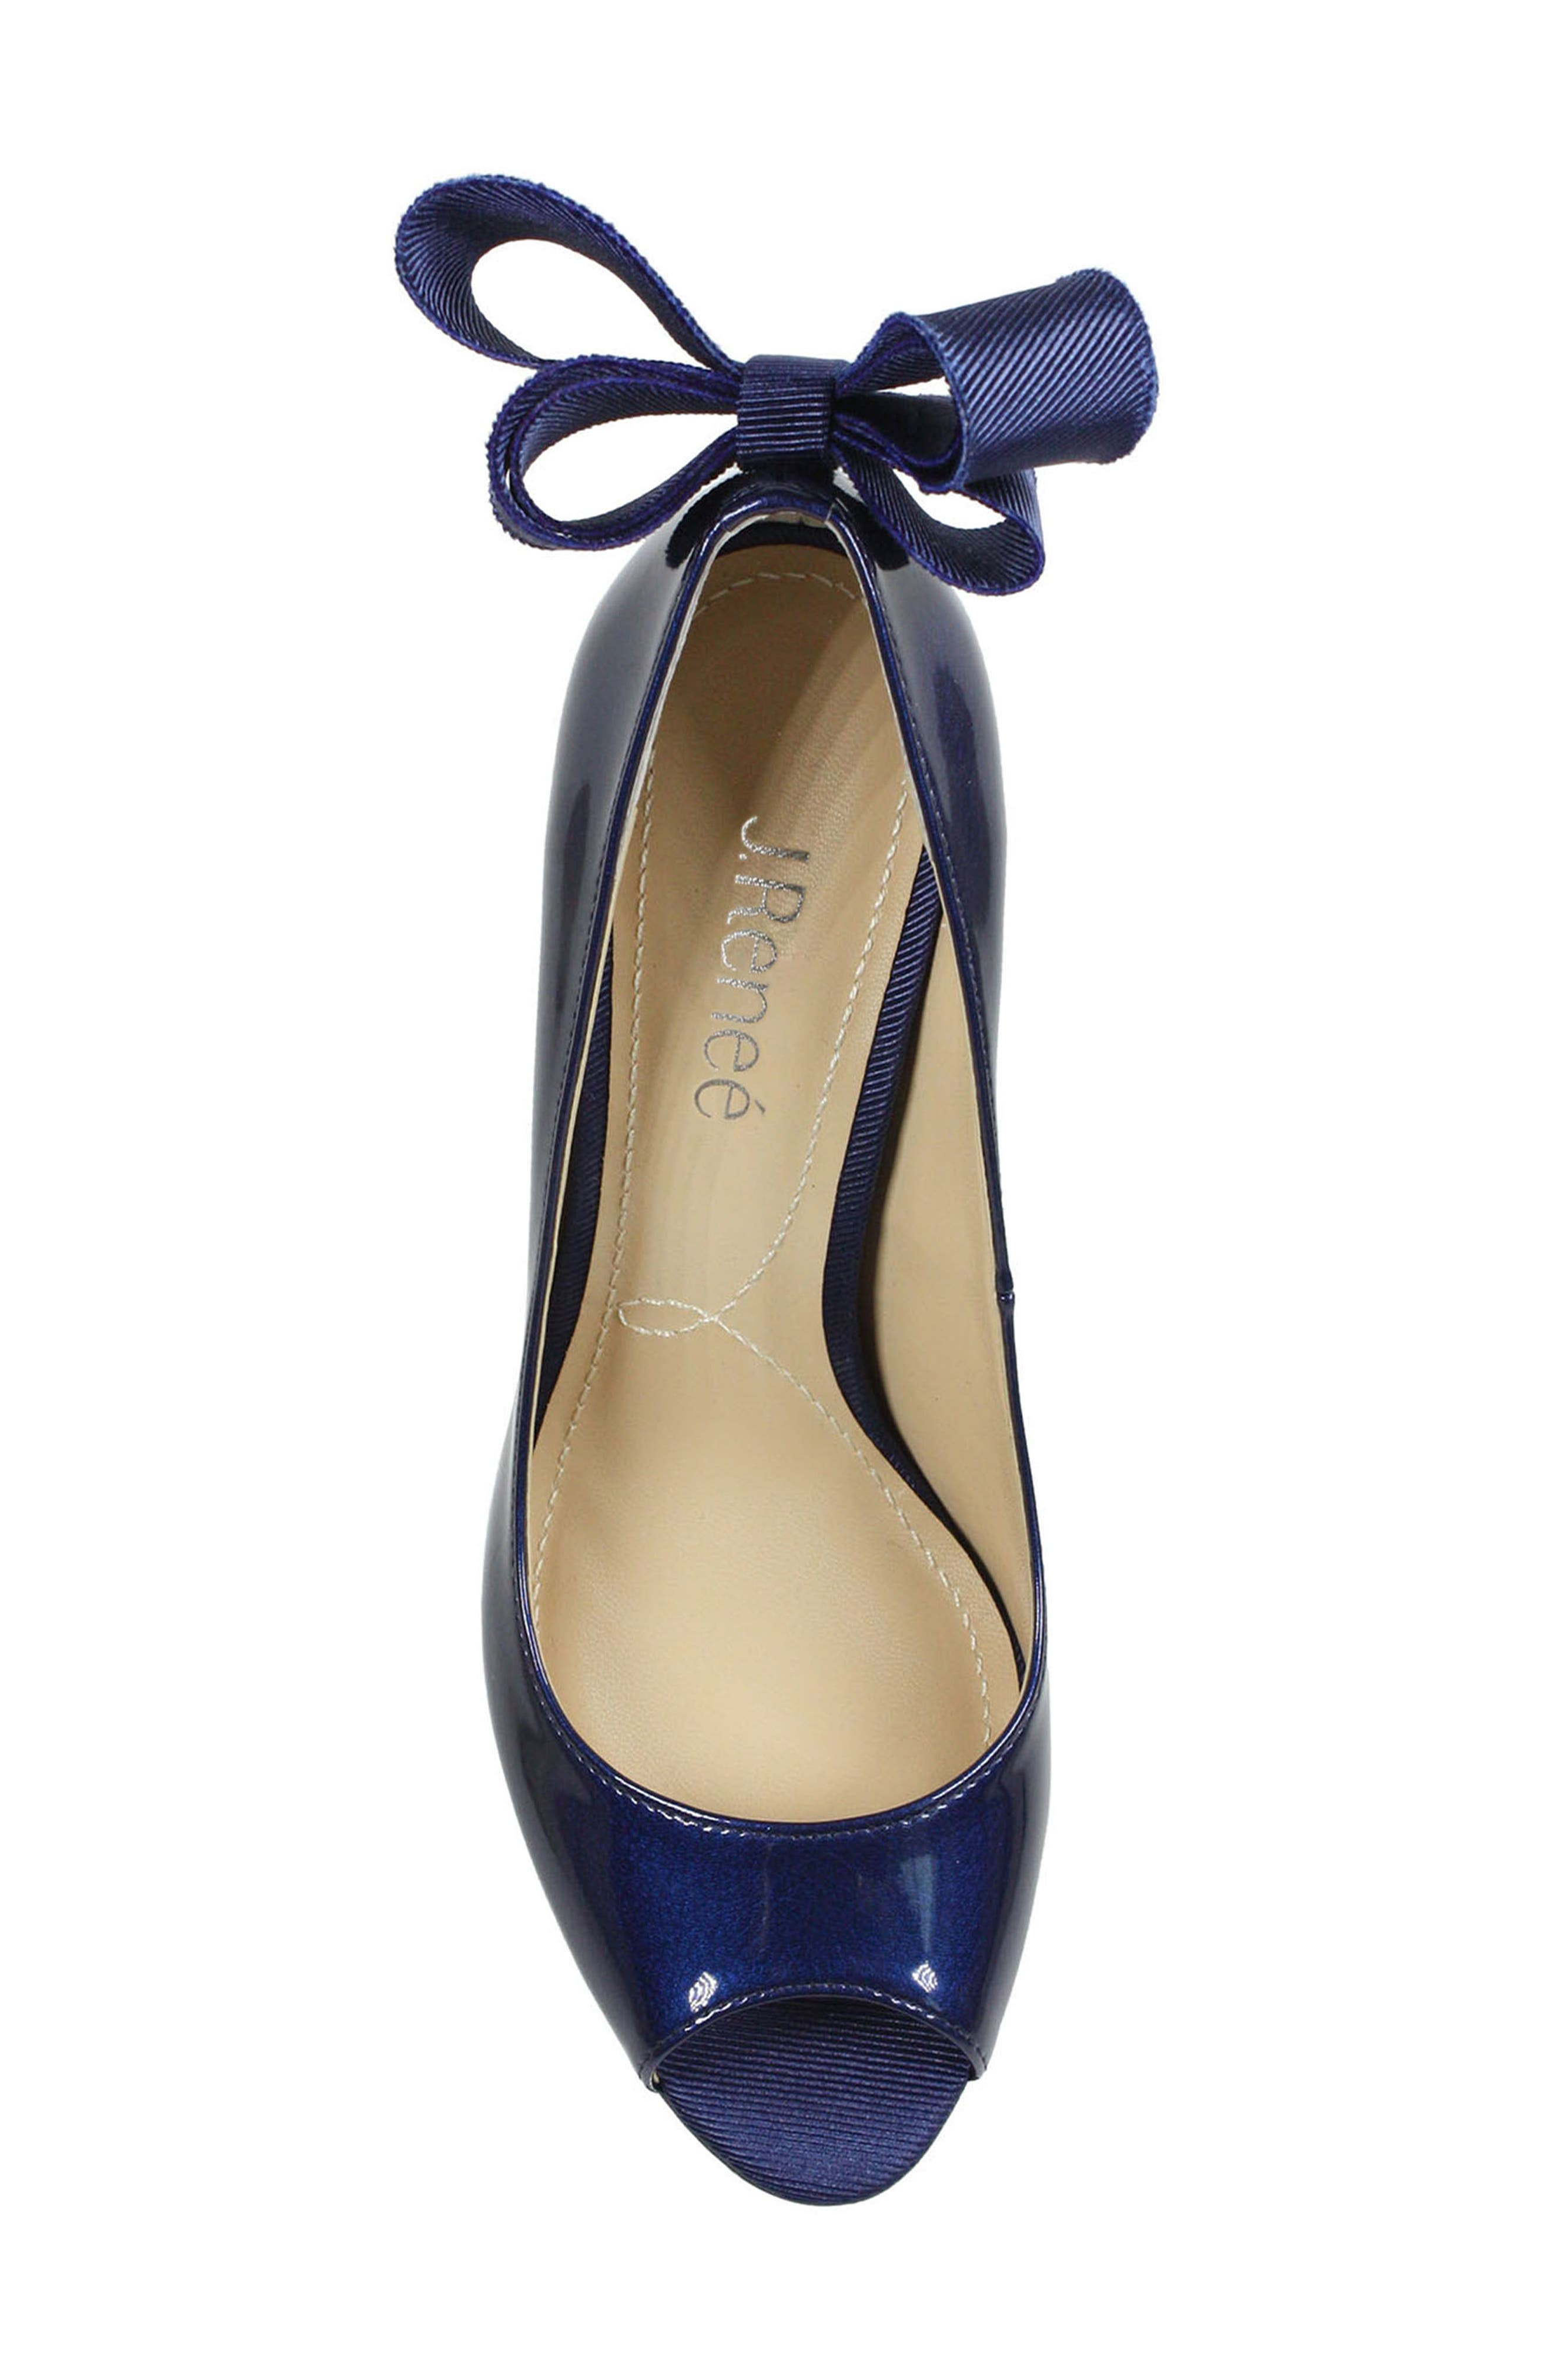 Ellasee Bow Peep Toe Pump,                             Alternate thumbnail 5, color,                             NAVY FAUX LEATHER